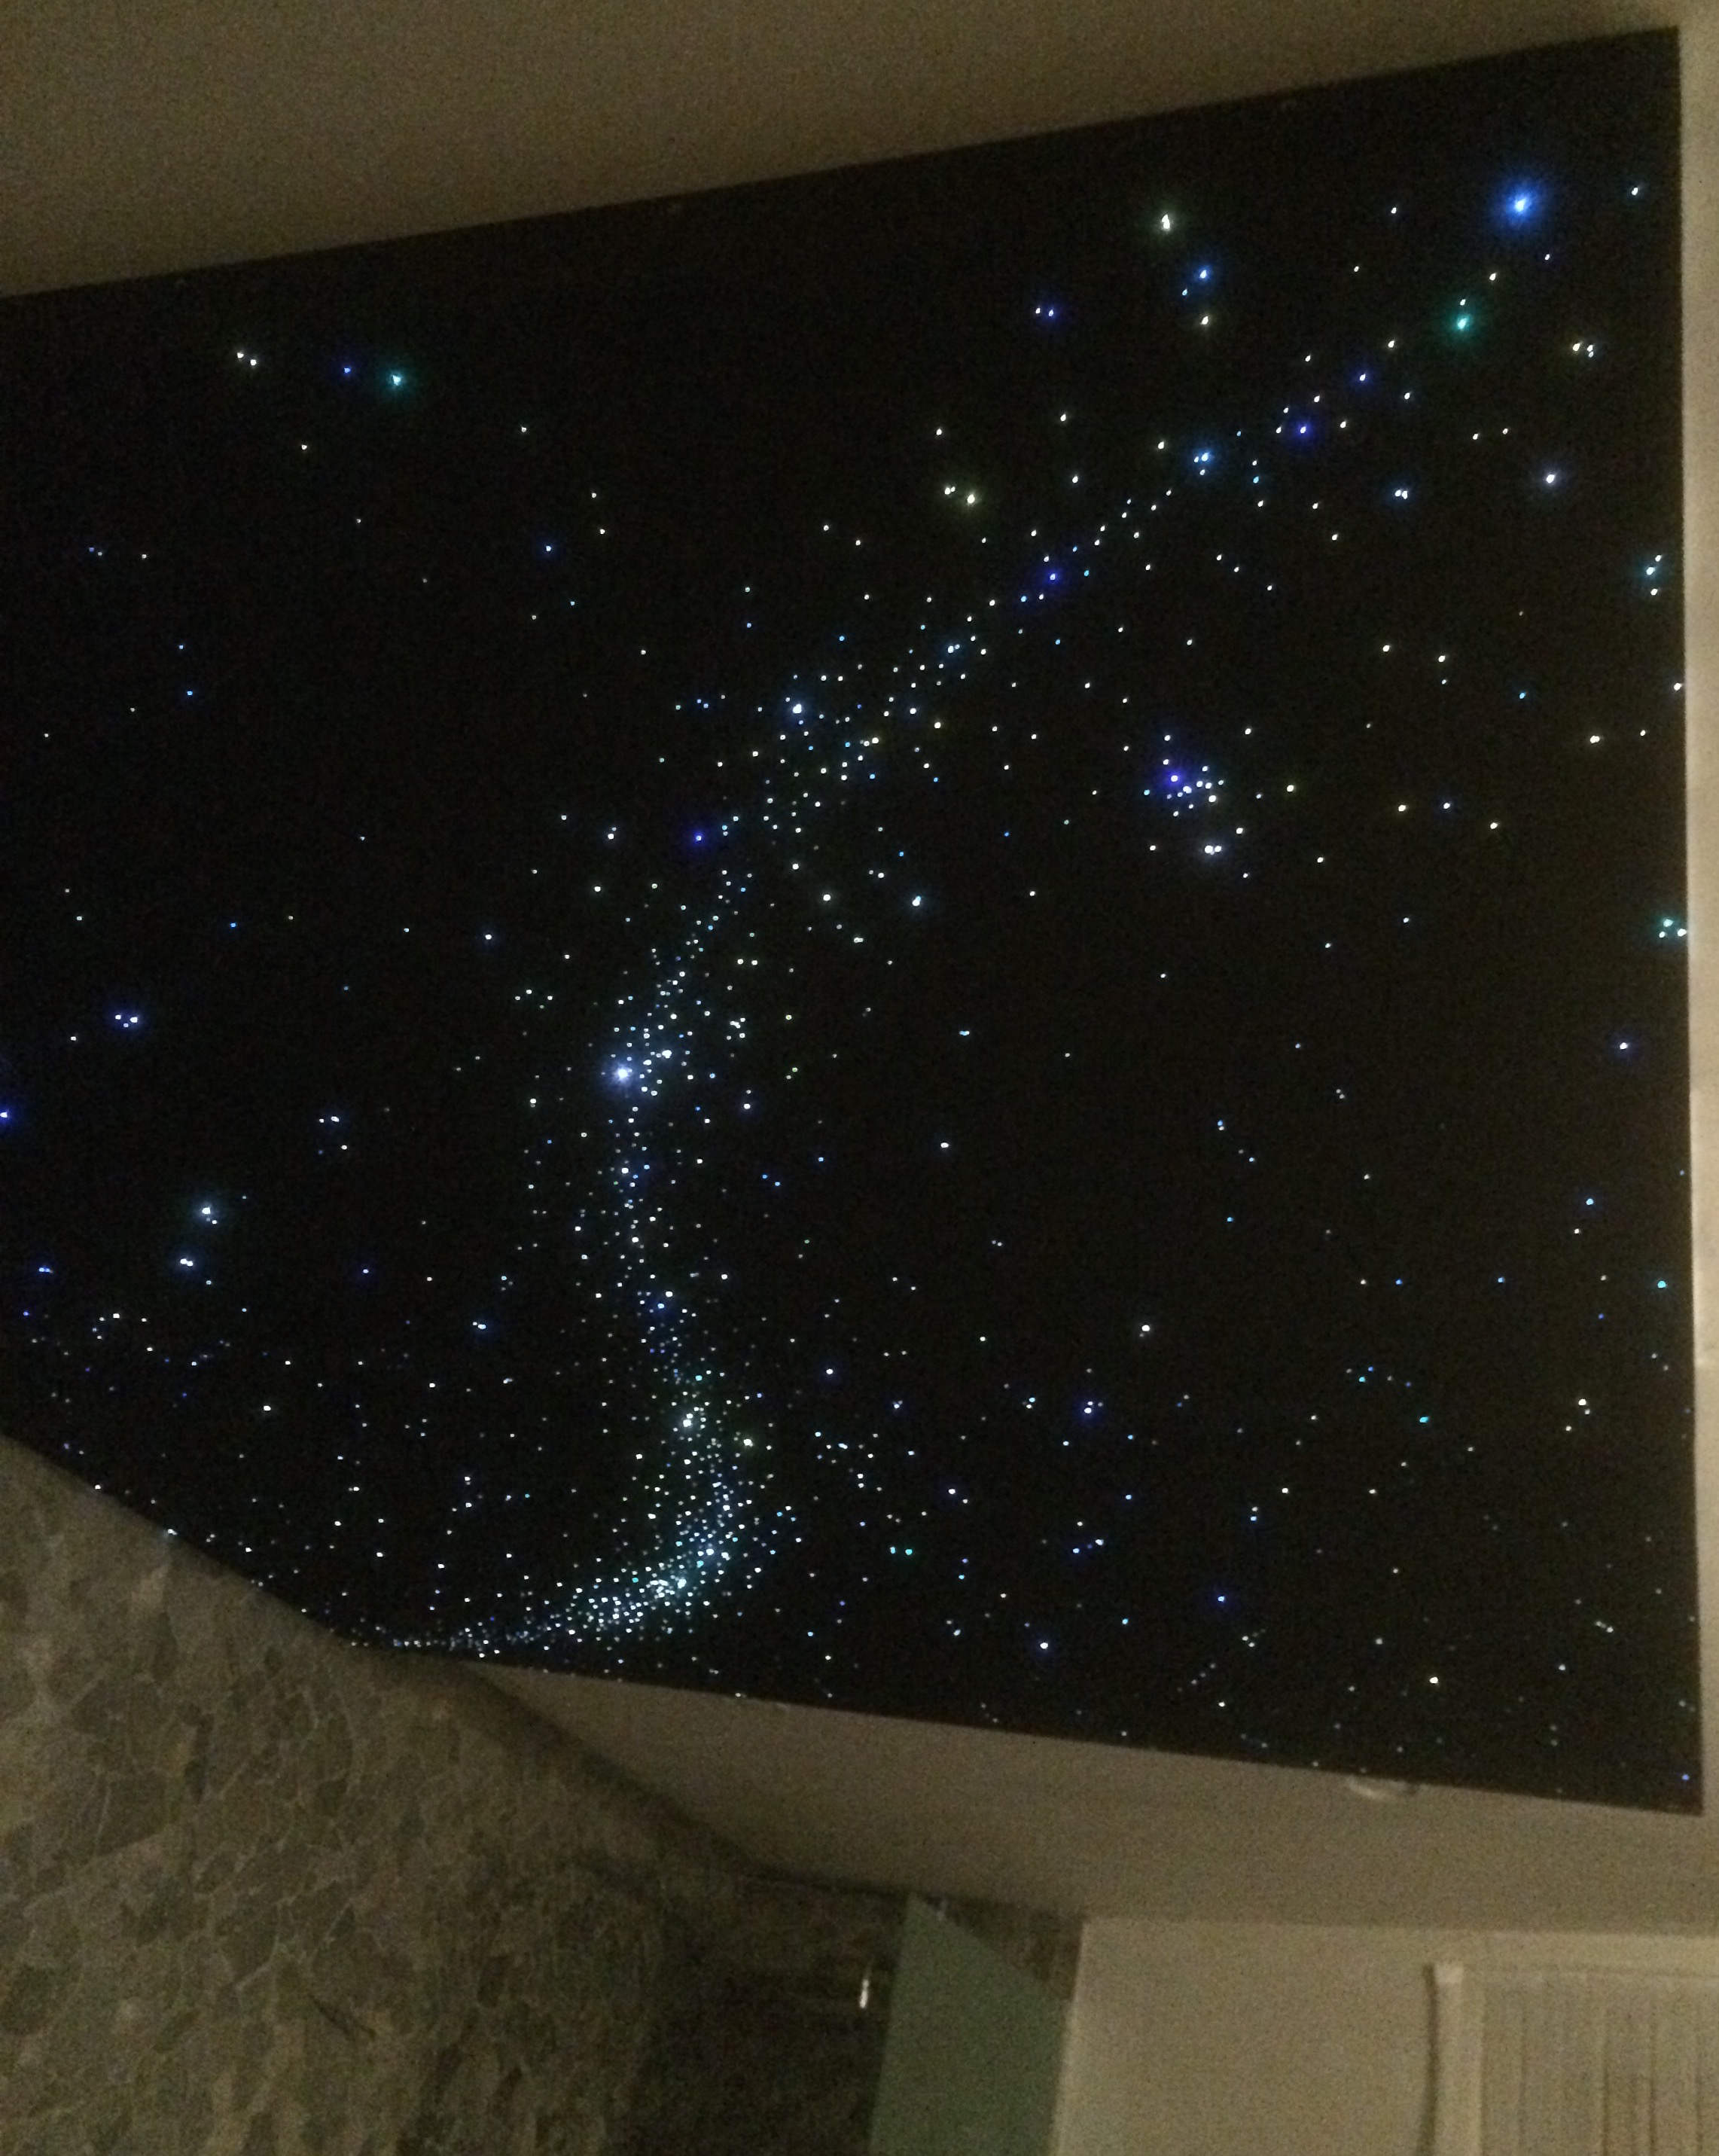 Watch Night Sky In Your Room With Star Effect Ceiling Lights